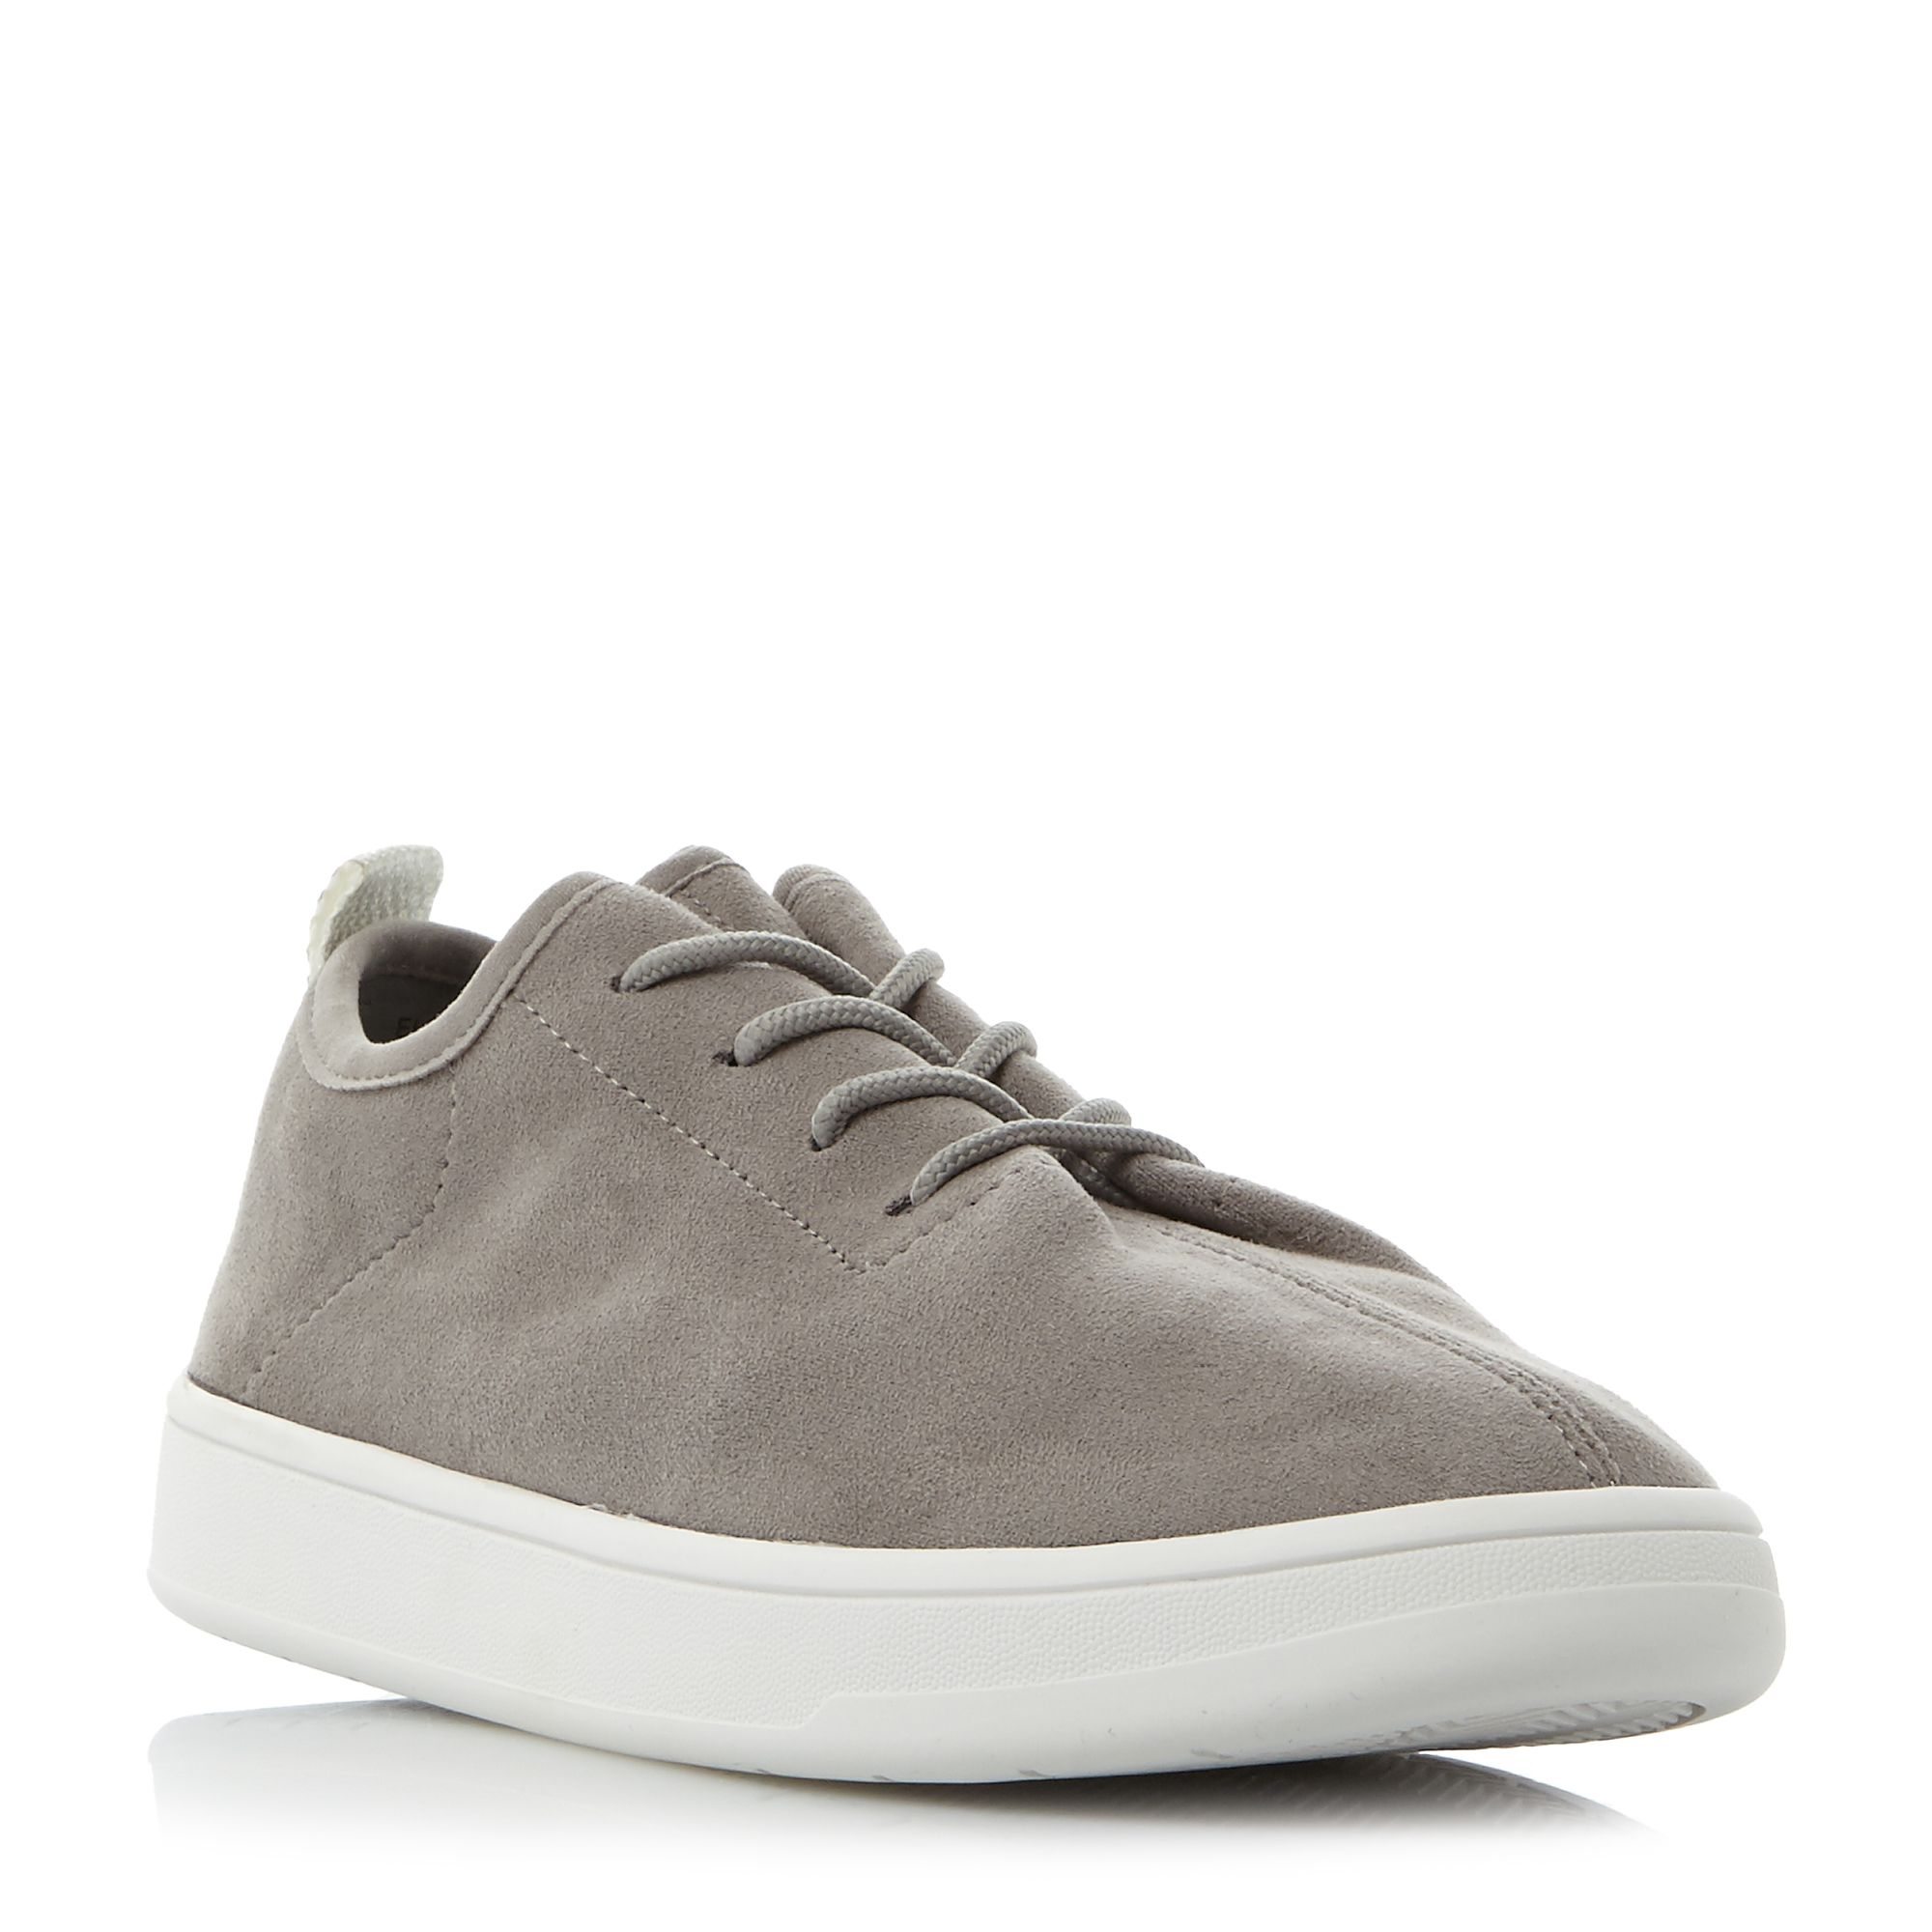 Steve Madden ELEXA SM LACE UP TRAINERS, Grey